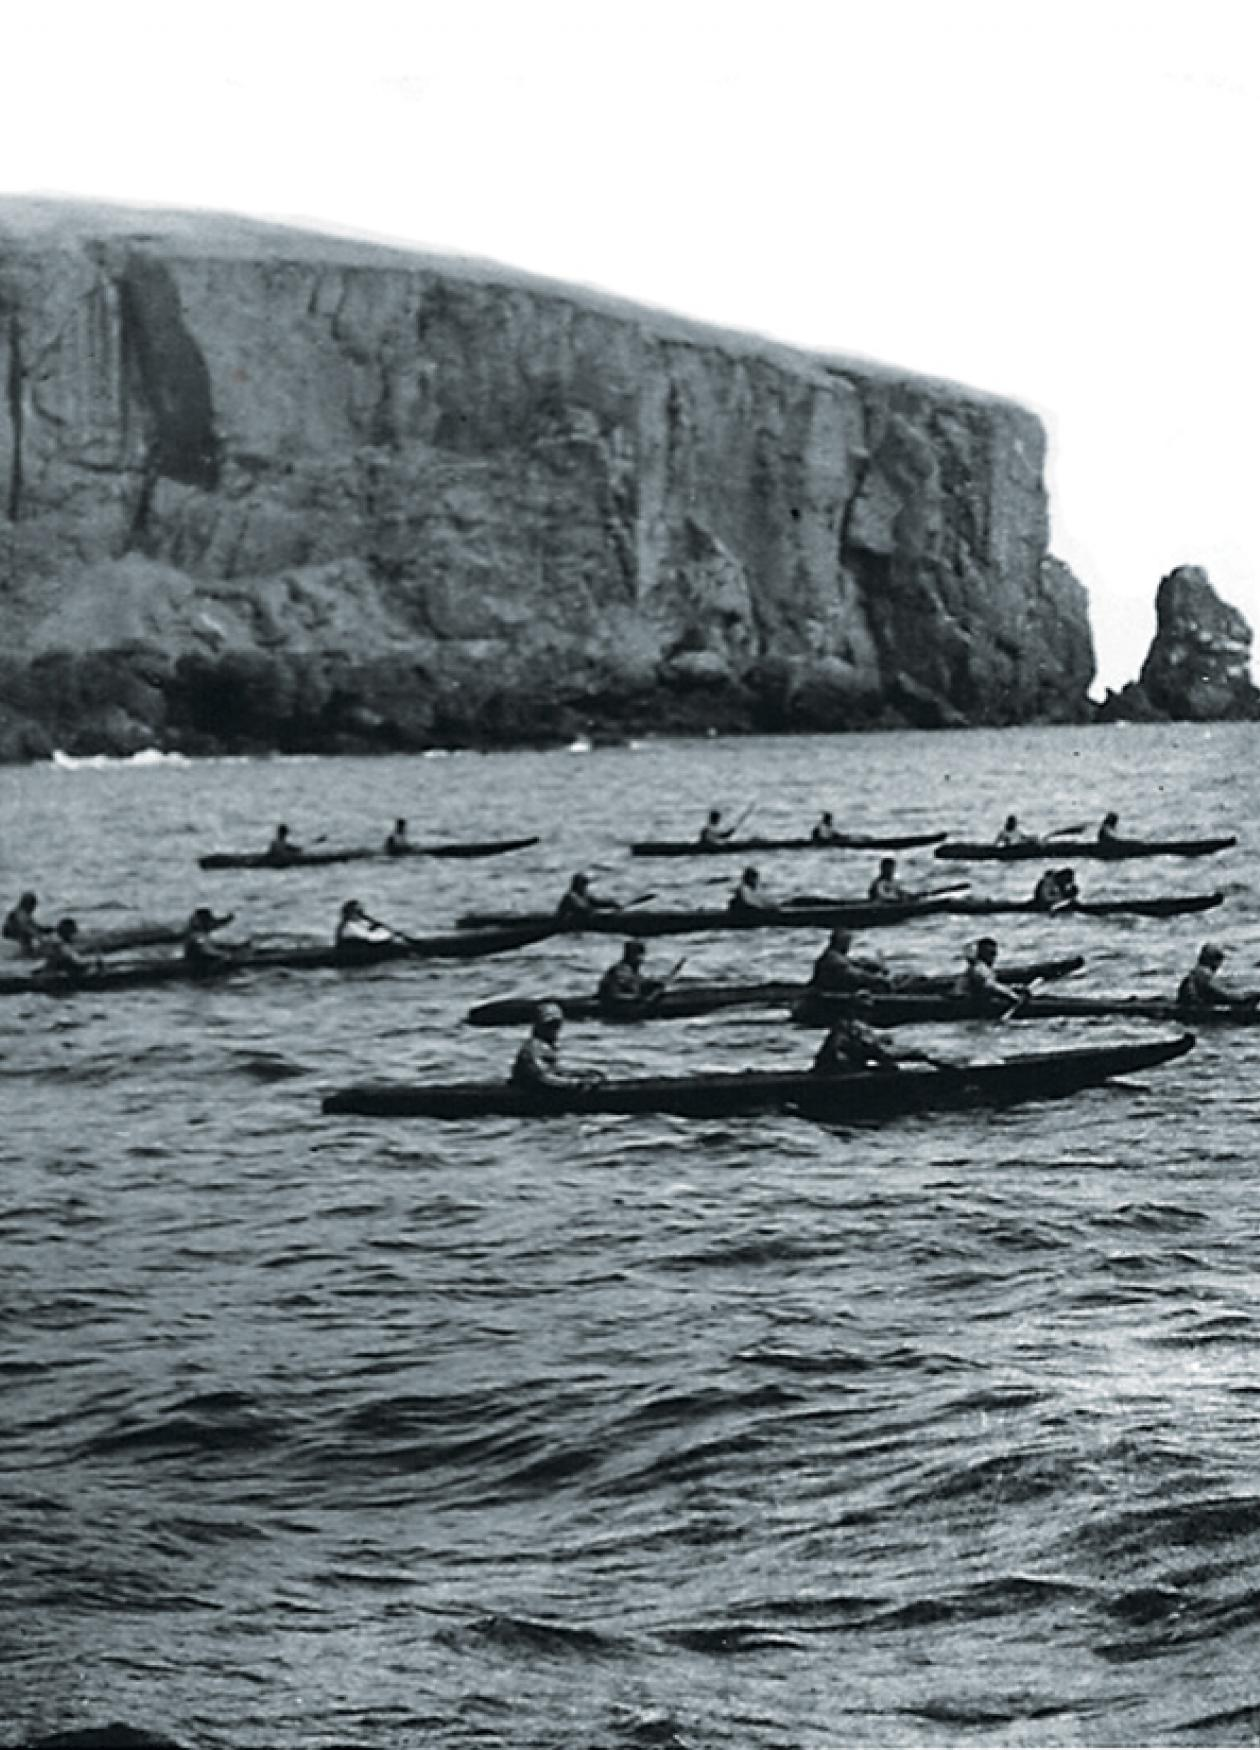 Several small boats with rowers, on the water, off the coast of an island with a large plateau